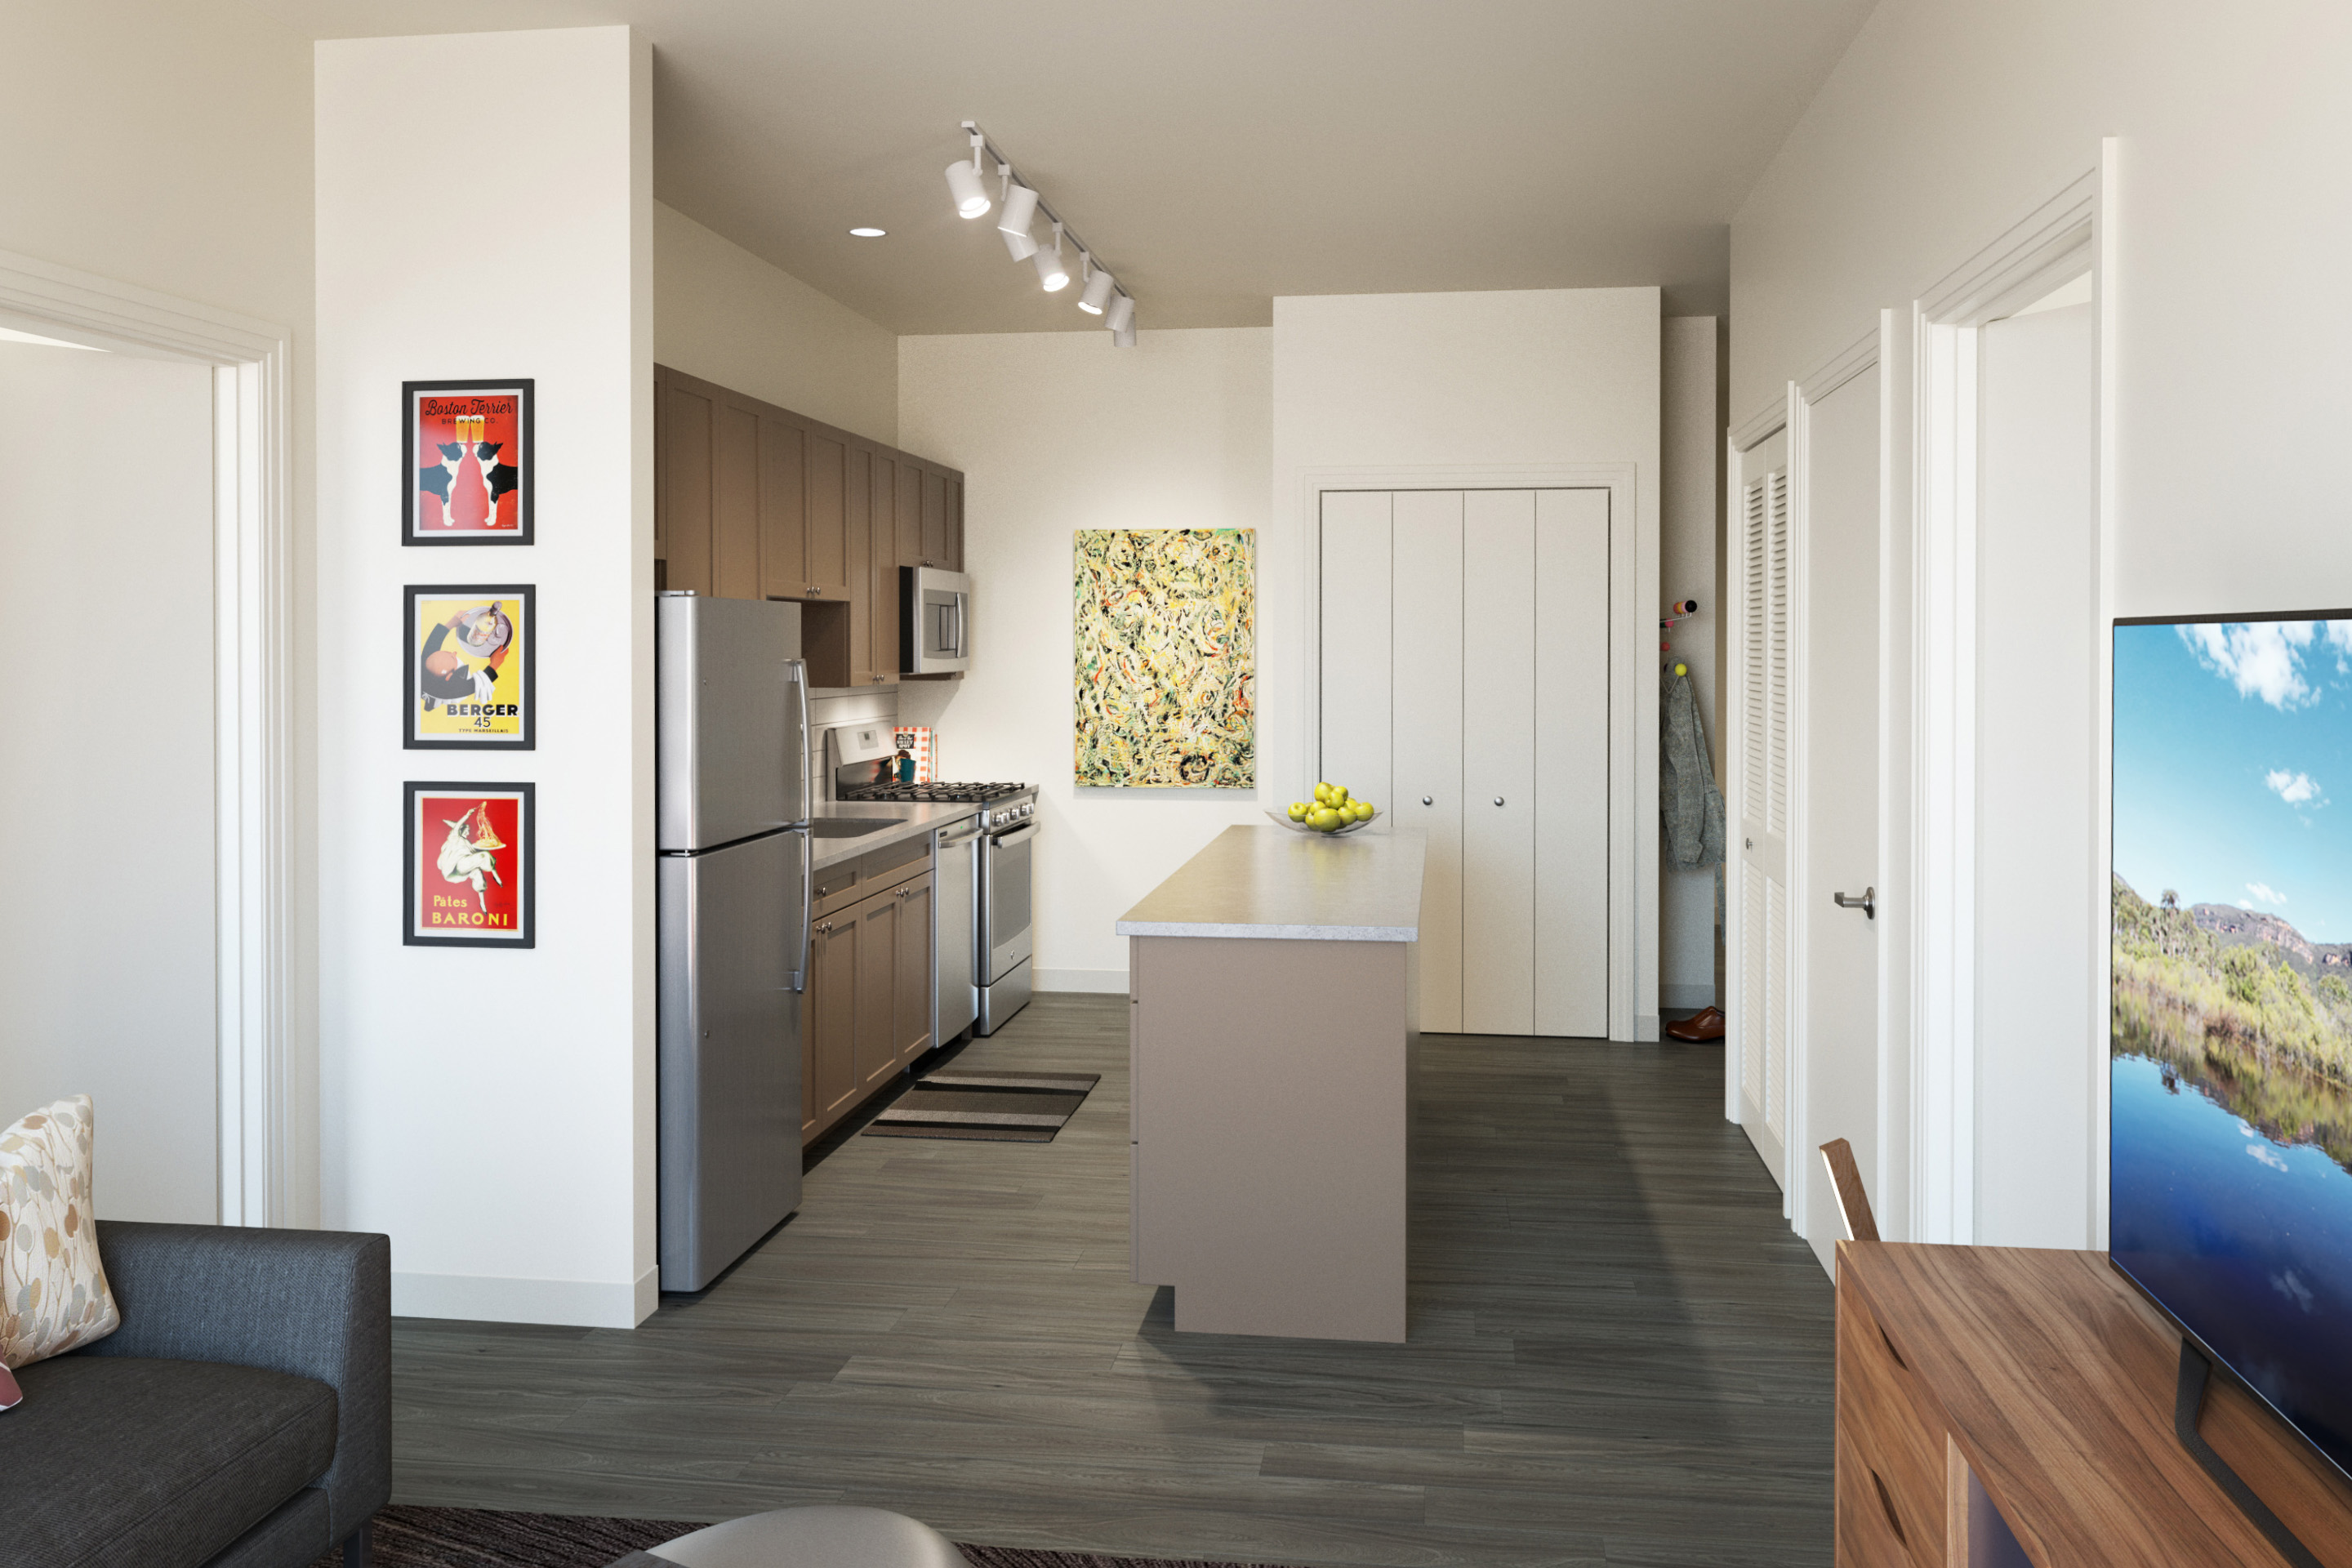 rent chicago for bedroom wi lovely elegant in graphics north apartments of milwaukee